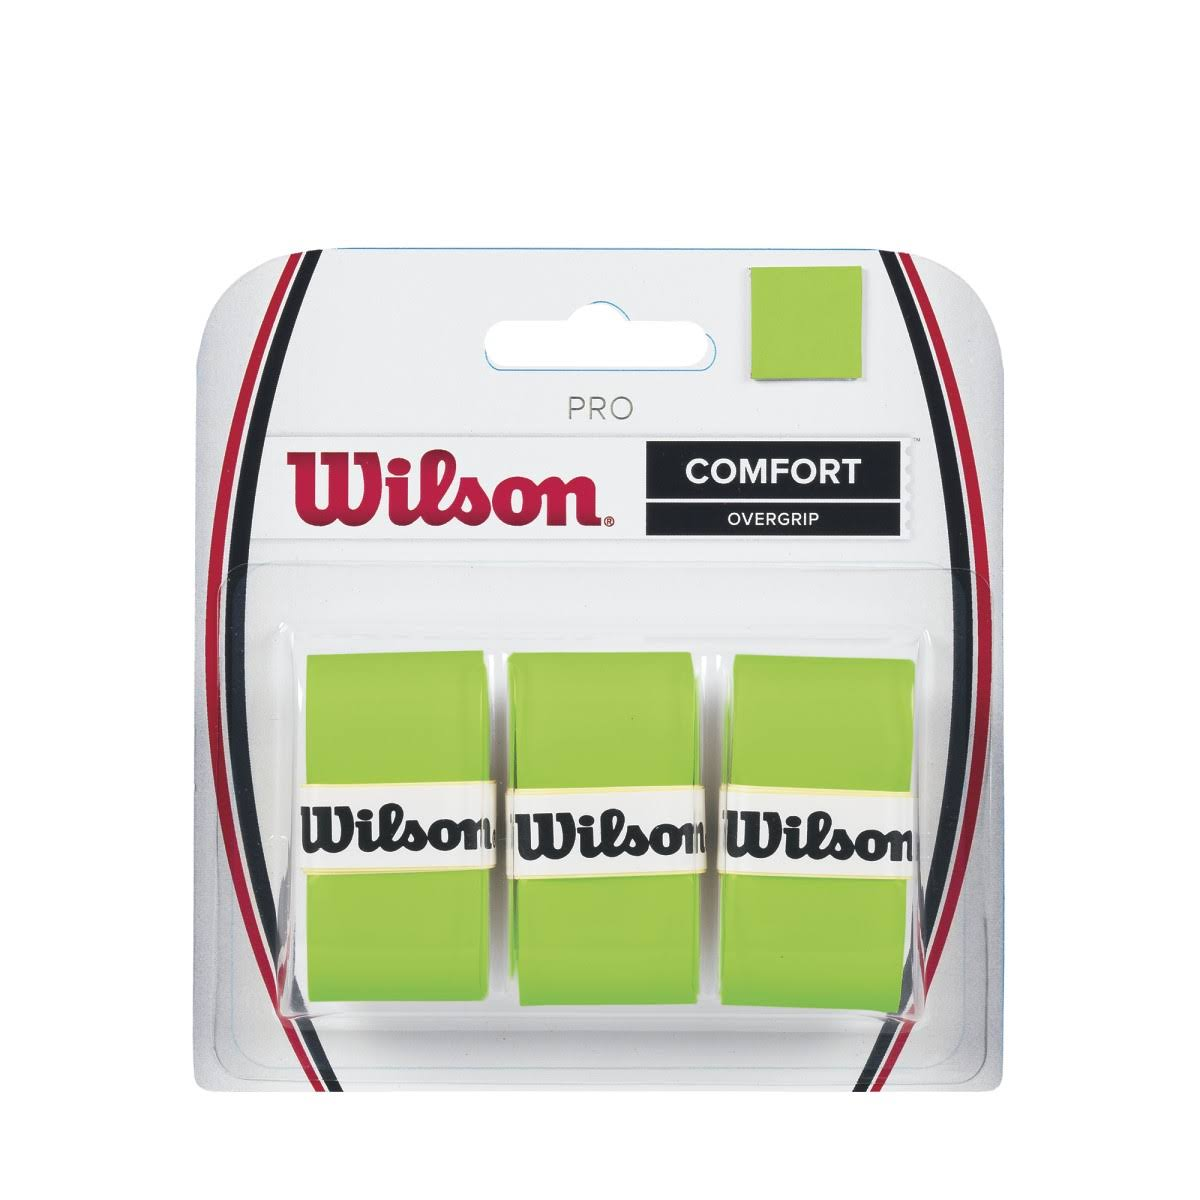 Wilson Pro Overgrip Comfort Badminton Racket Tape - Green, 3pk